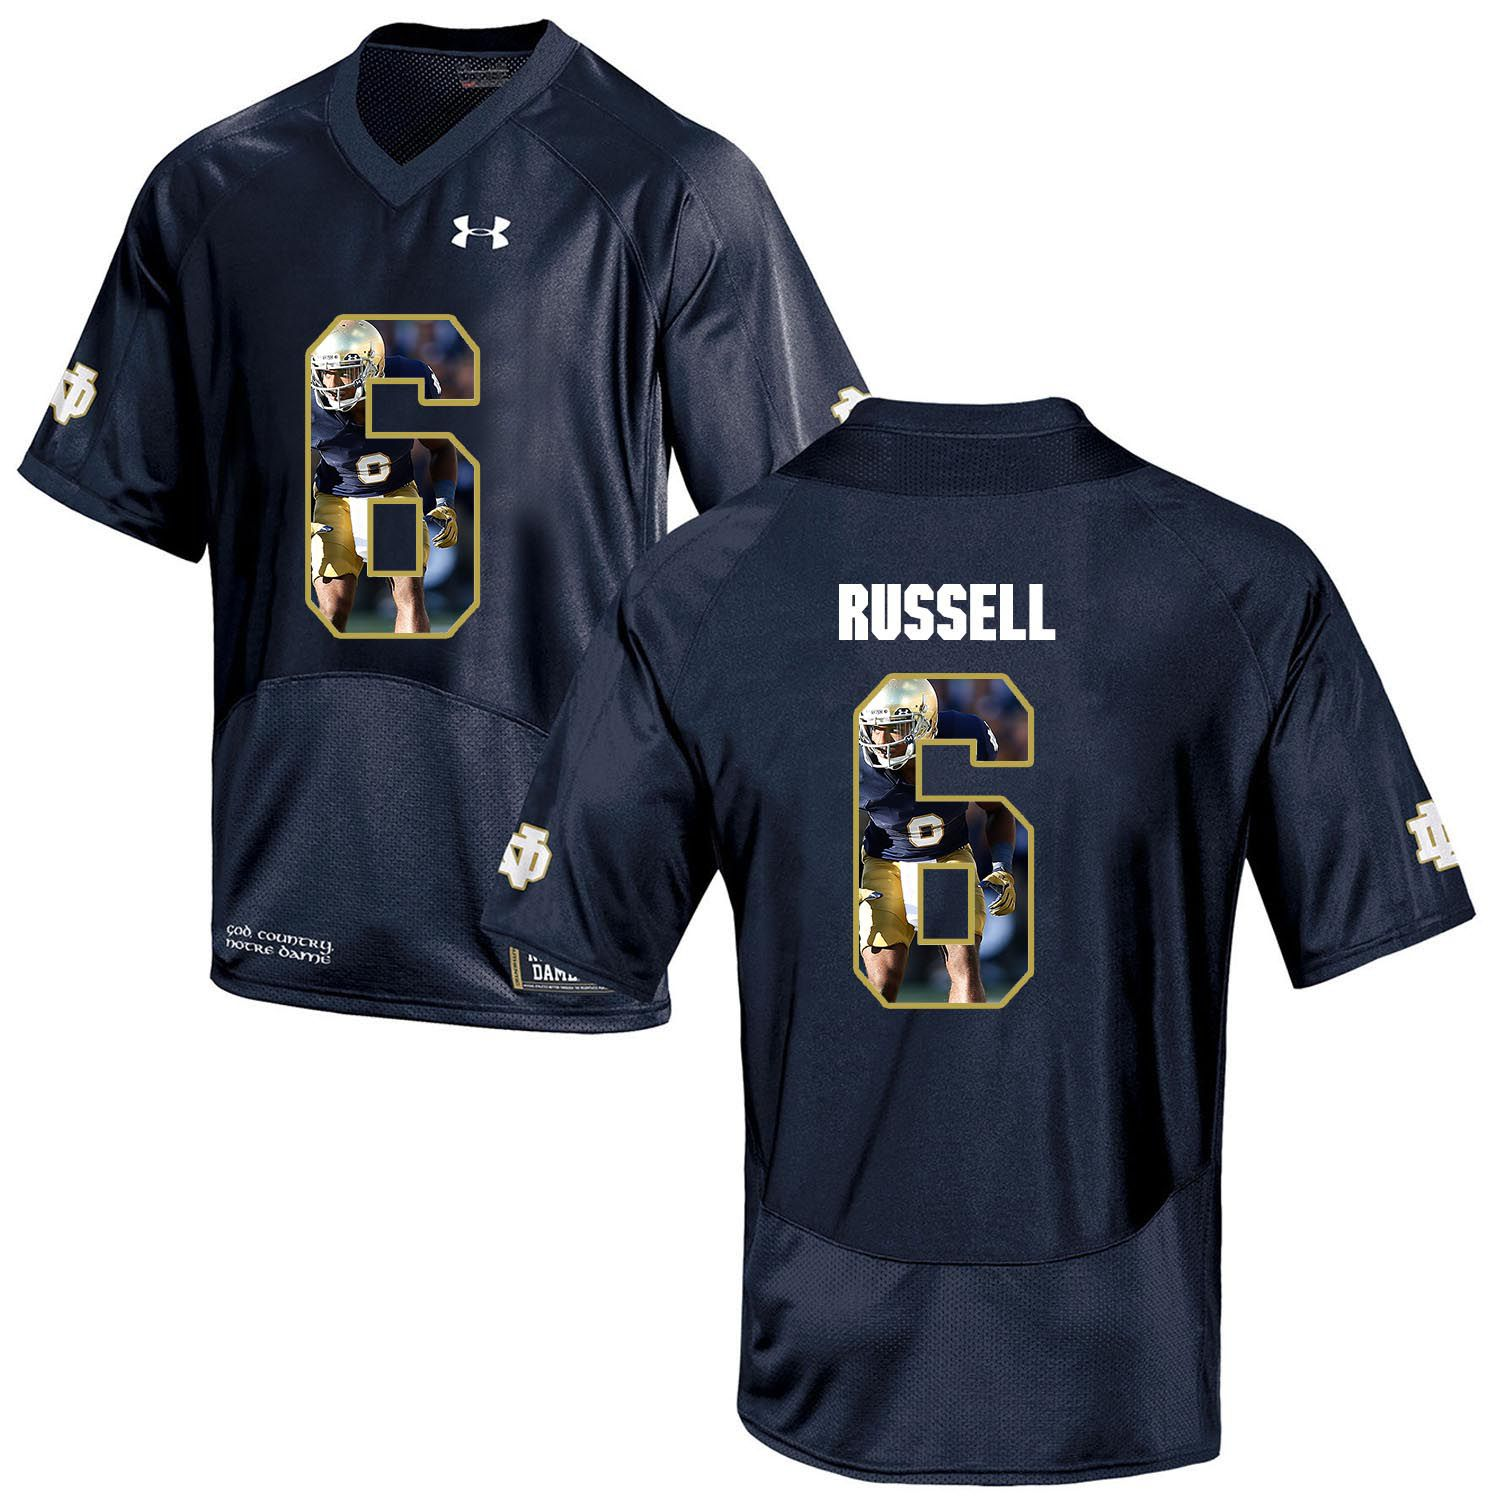 Men Norte Dame Fighting Irish 6 Russell Navy Blue Fashion Edition Customized NCAA Jerseys